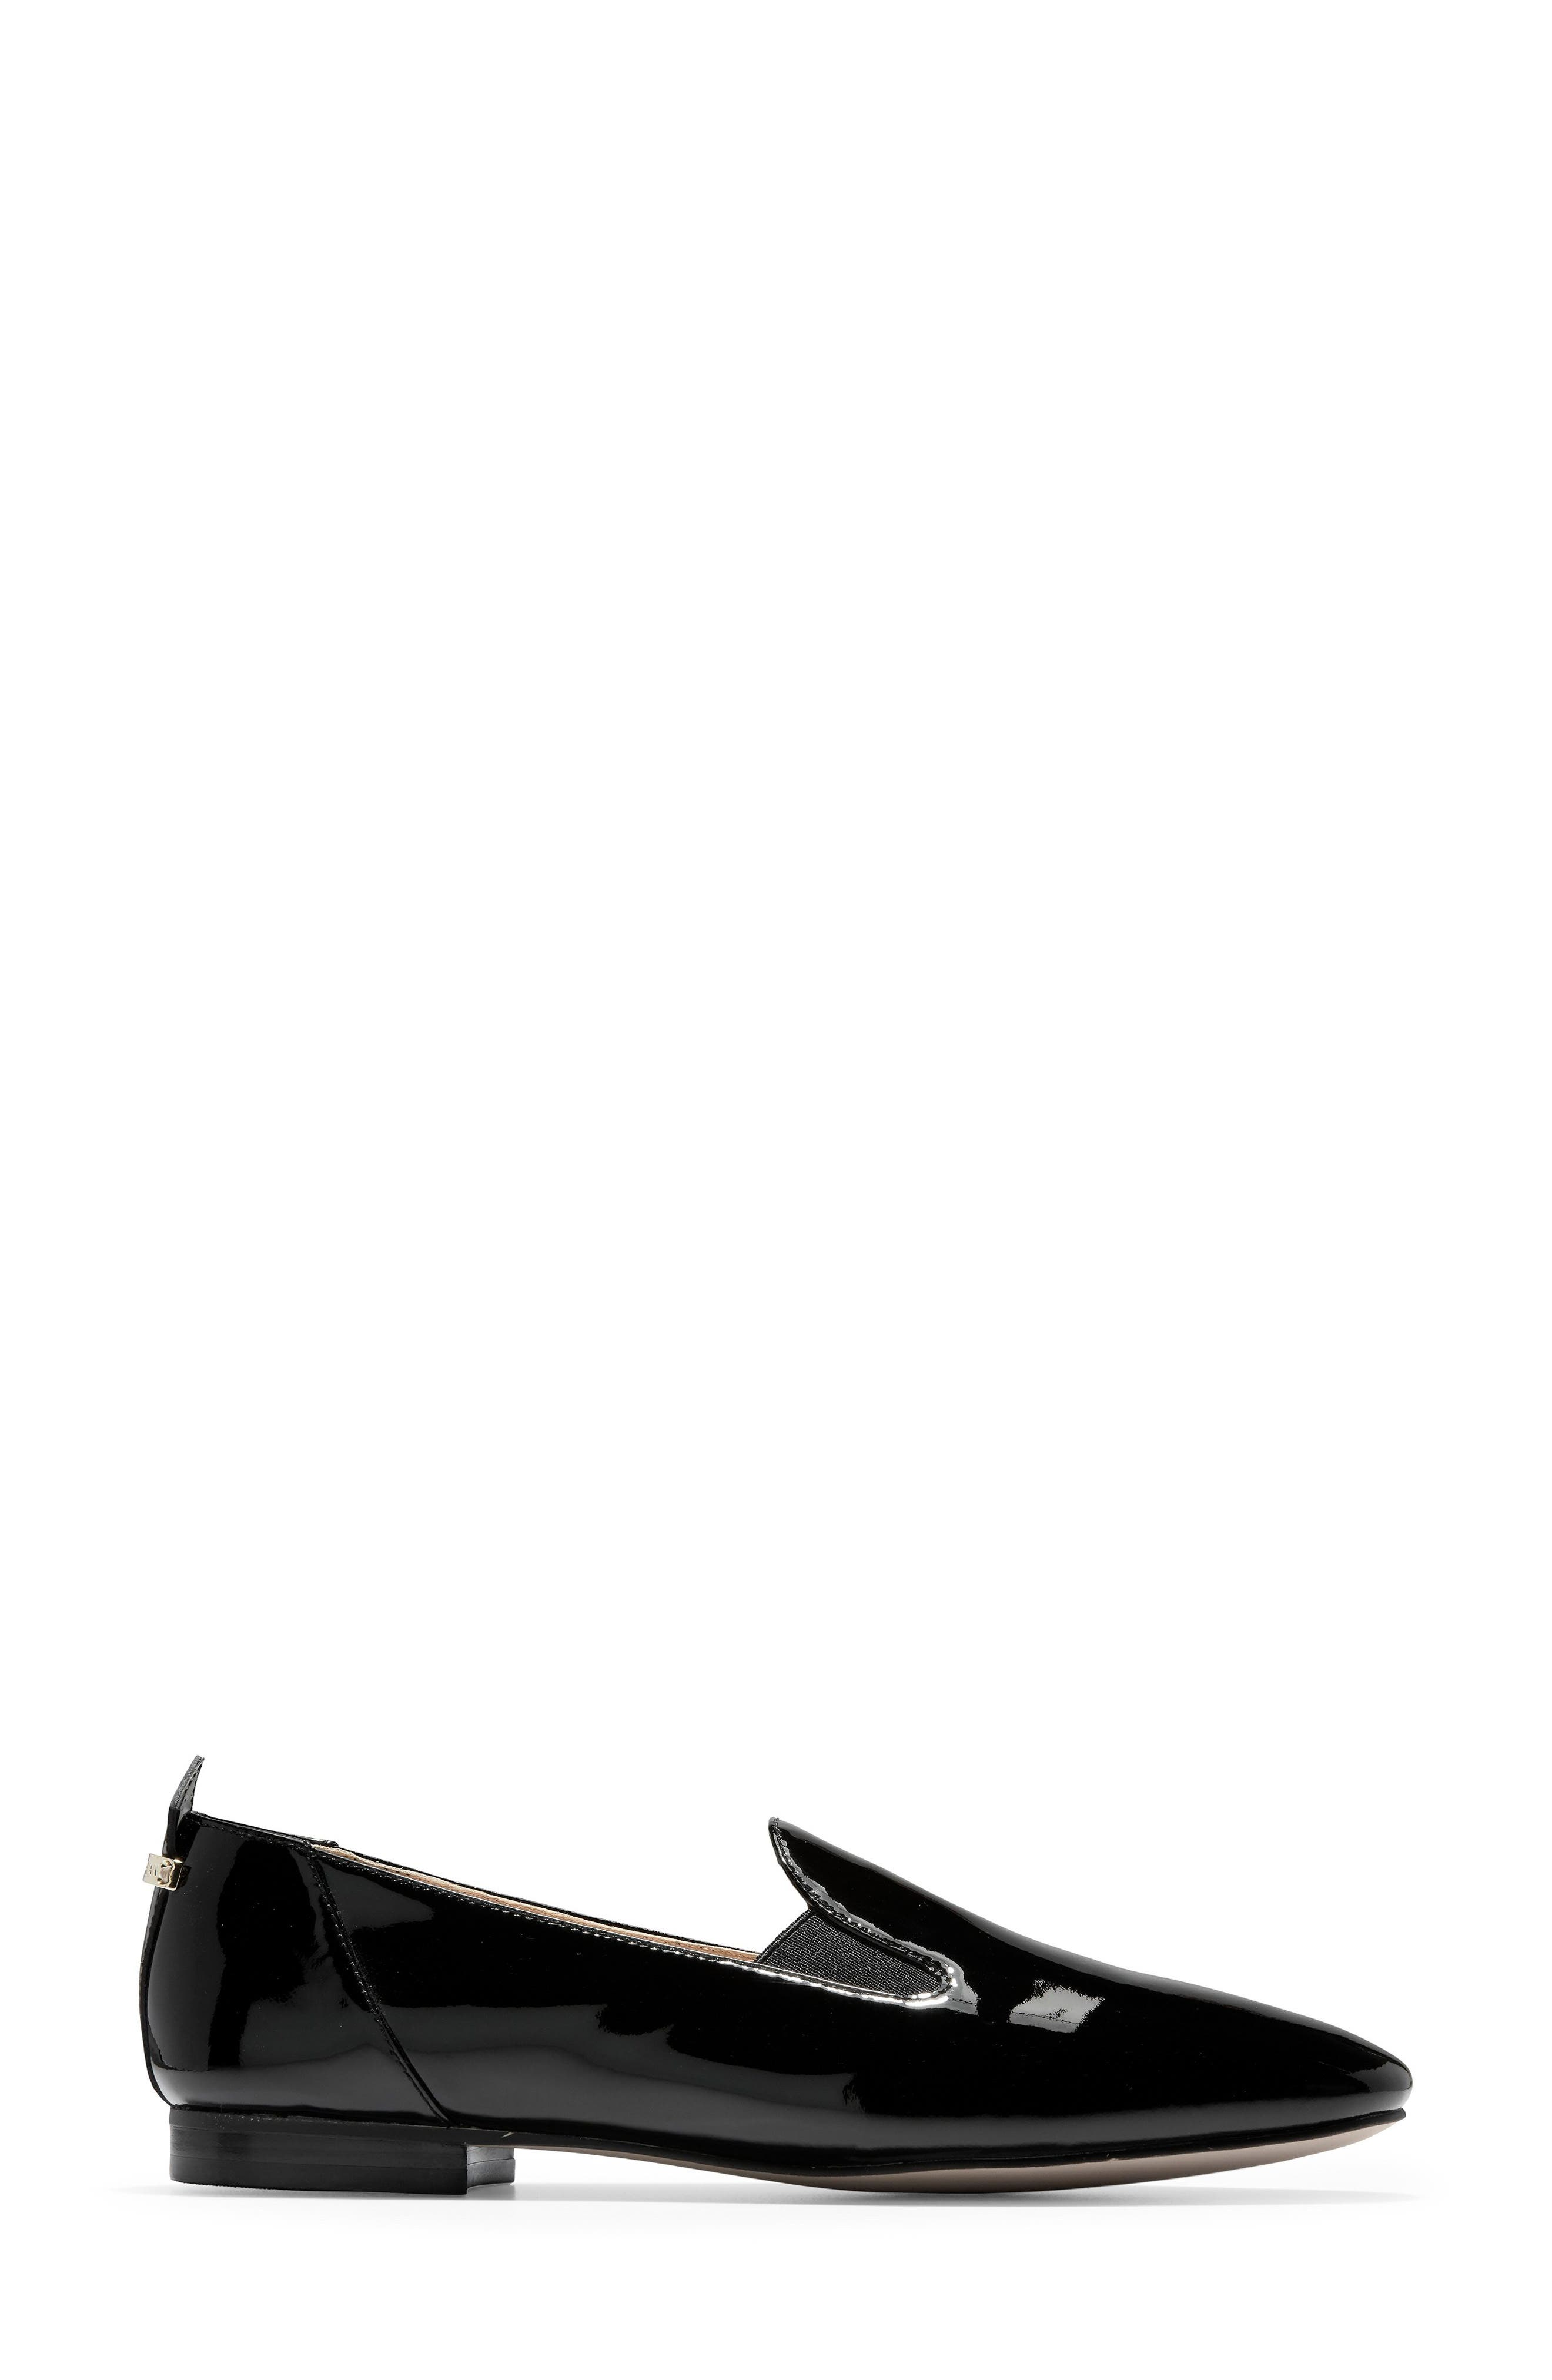 COLE HAAN, Portia Loafer, Alternate thumbnail 3, color, BLACK PATENT LEATHER